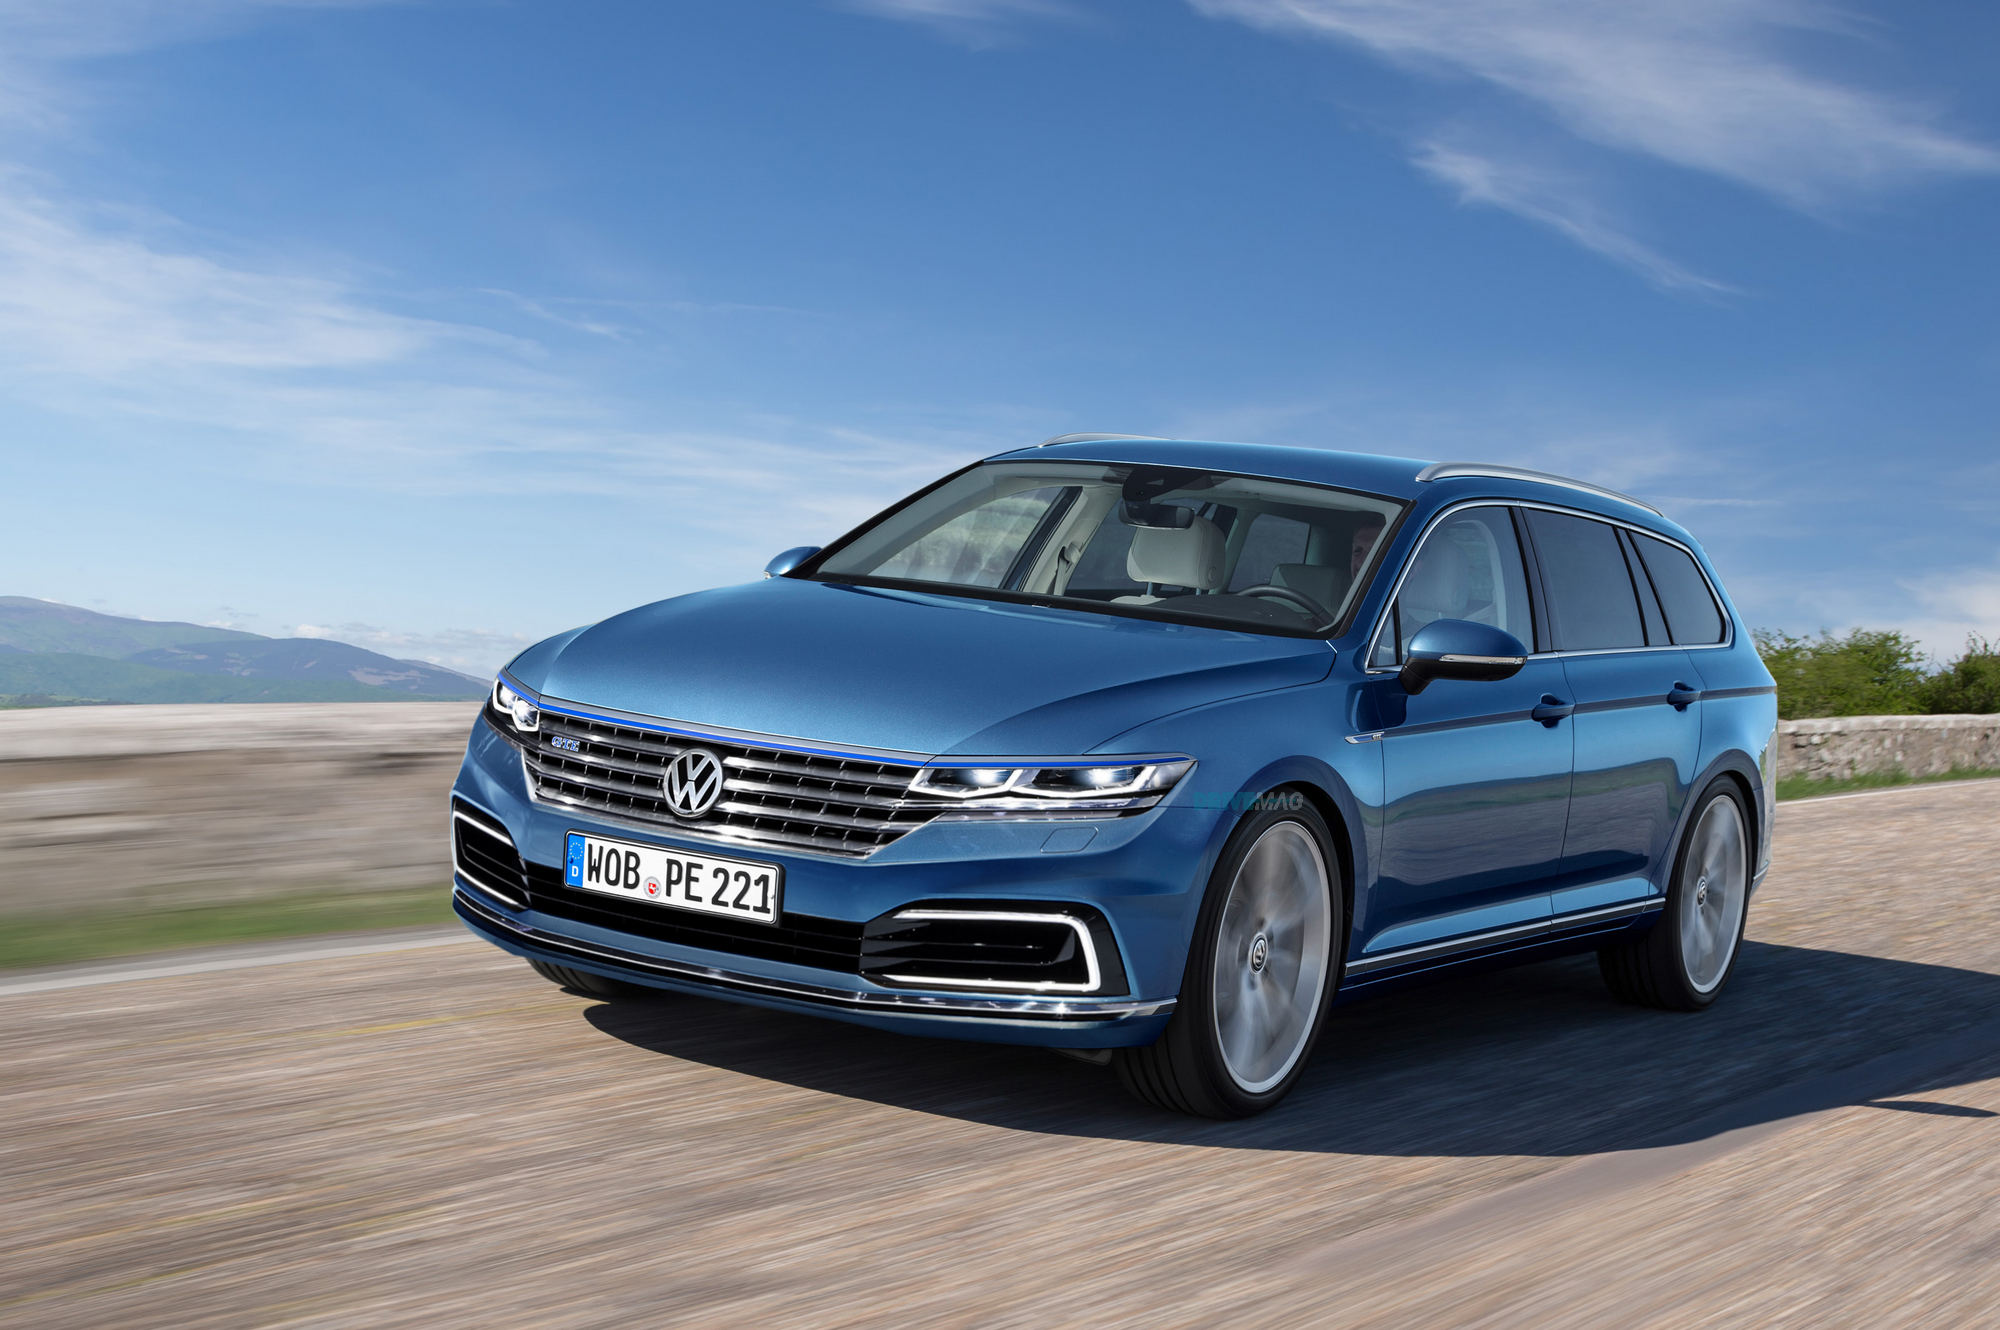 europe to redesigned this year volkswagen coming vw passat carscoops